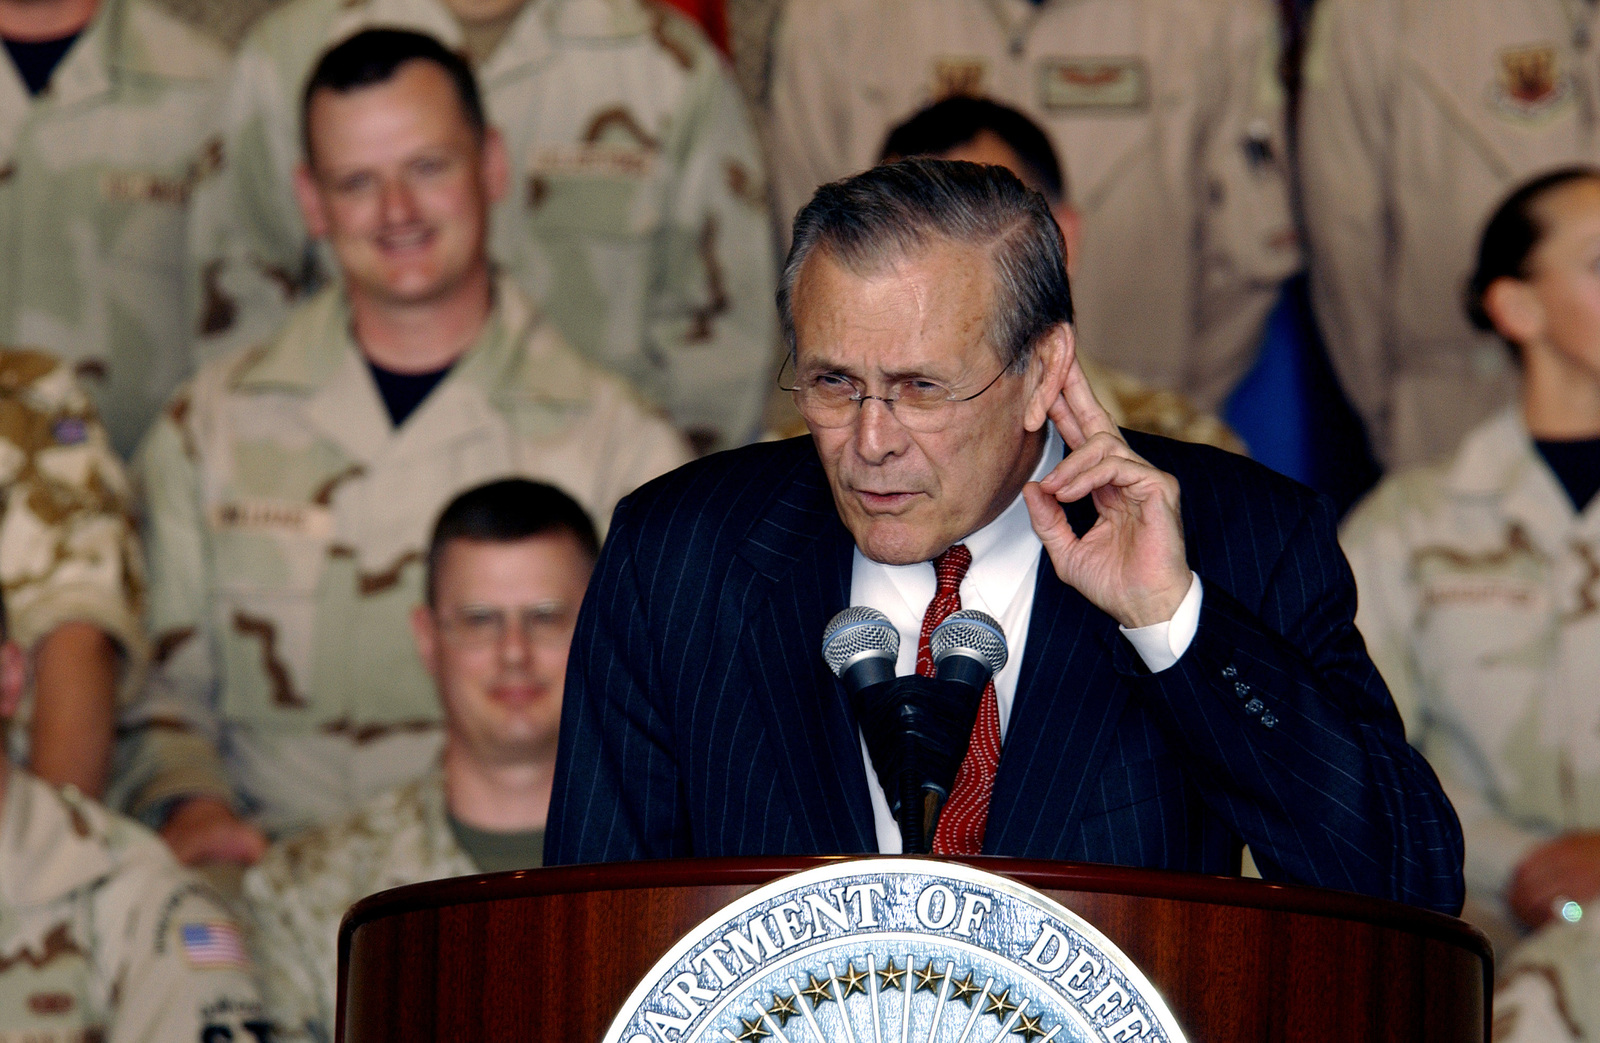 The Honorable Donald H. Rumsfeld, U.S. Secretary of Defense, listens attentively to a question during the question and answer period at the end of his talk to coalition forces, currently stationed at Prince Sultan Air Base, Saudi Arabia, participating in Operation Iraqi Freedom, on April 29, 2003. (DoD photo by MASTER SGT. Michael E. Best) (Released)